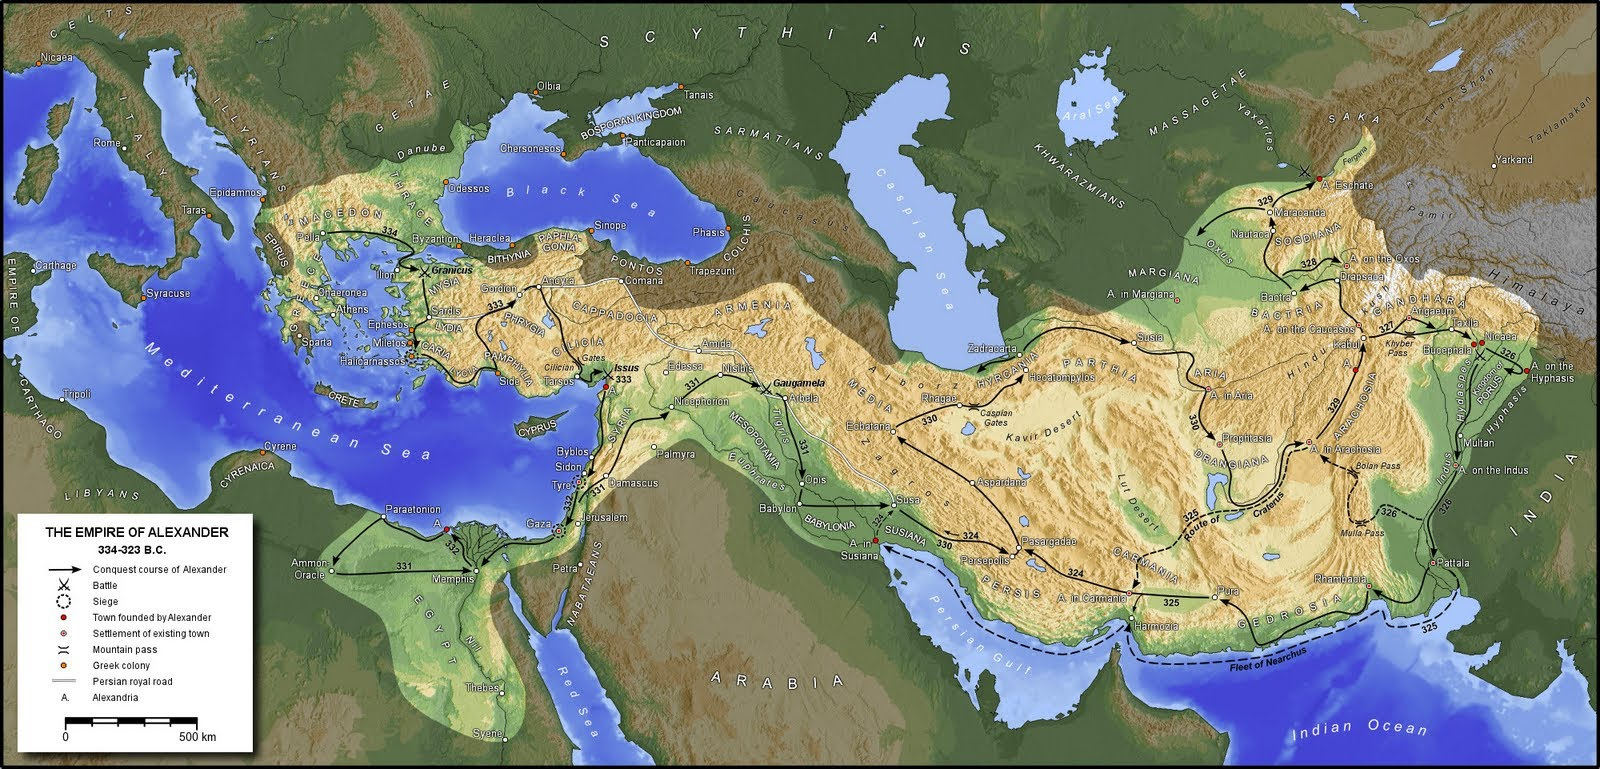 how was alexander the great able to conquer the empire